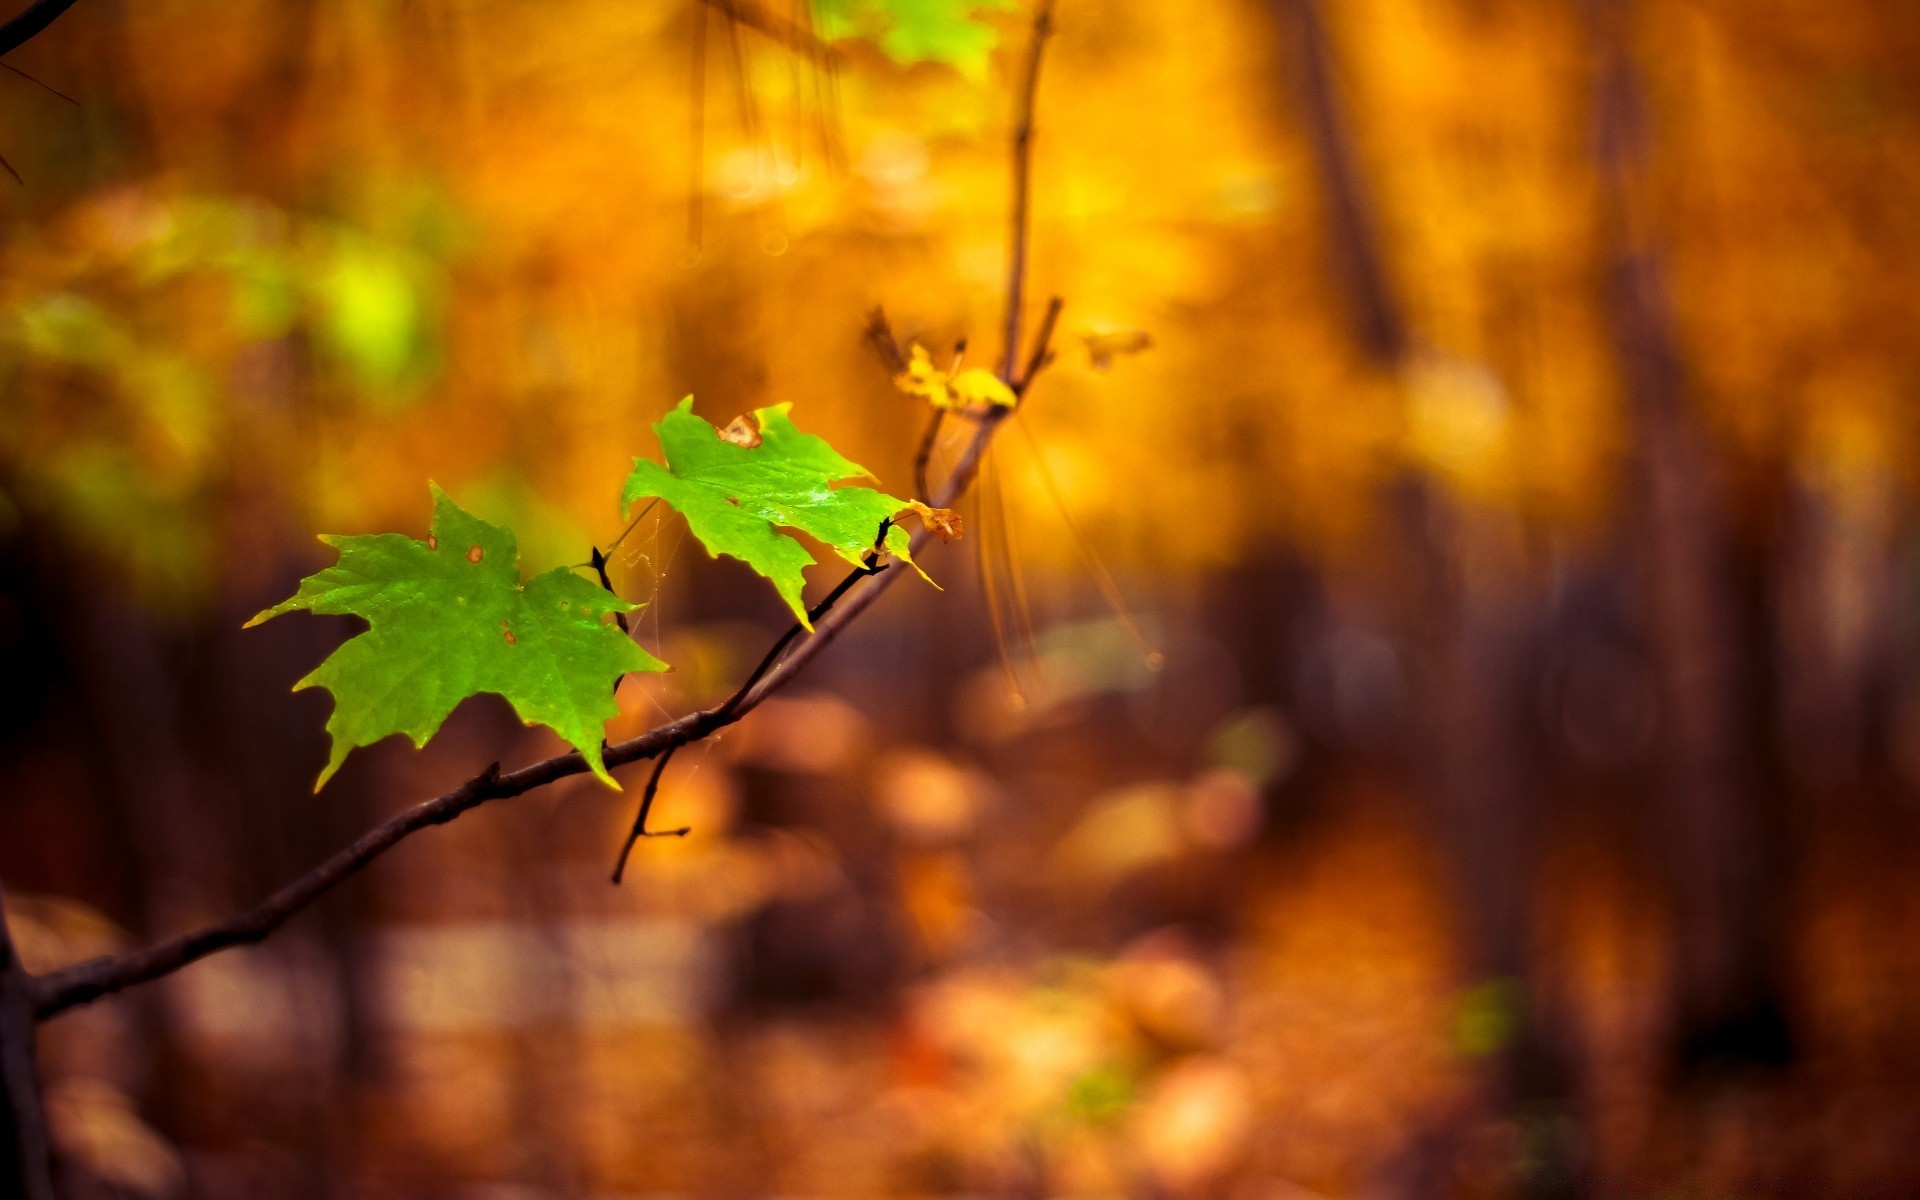 Free Computer Wallpaper Fall Leaves Green Leaves Autumn Android Wallpapers For Free